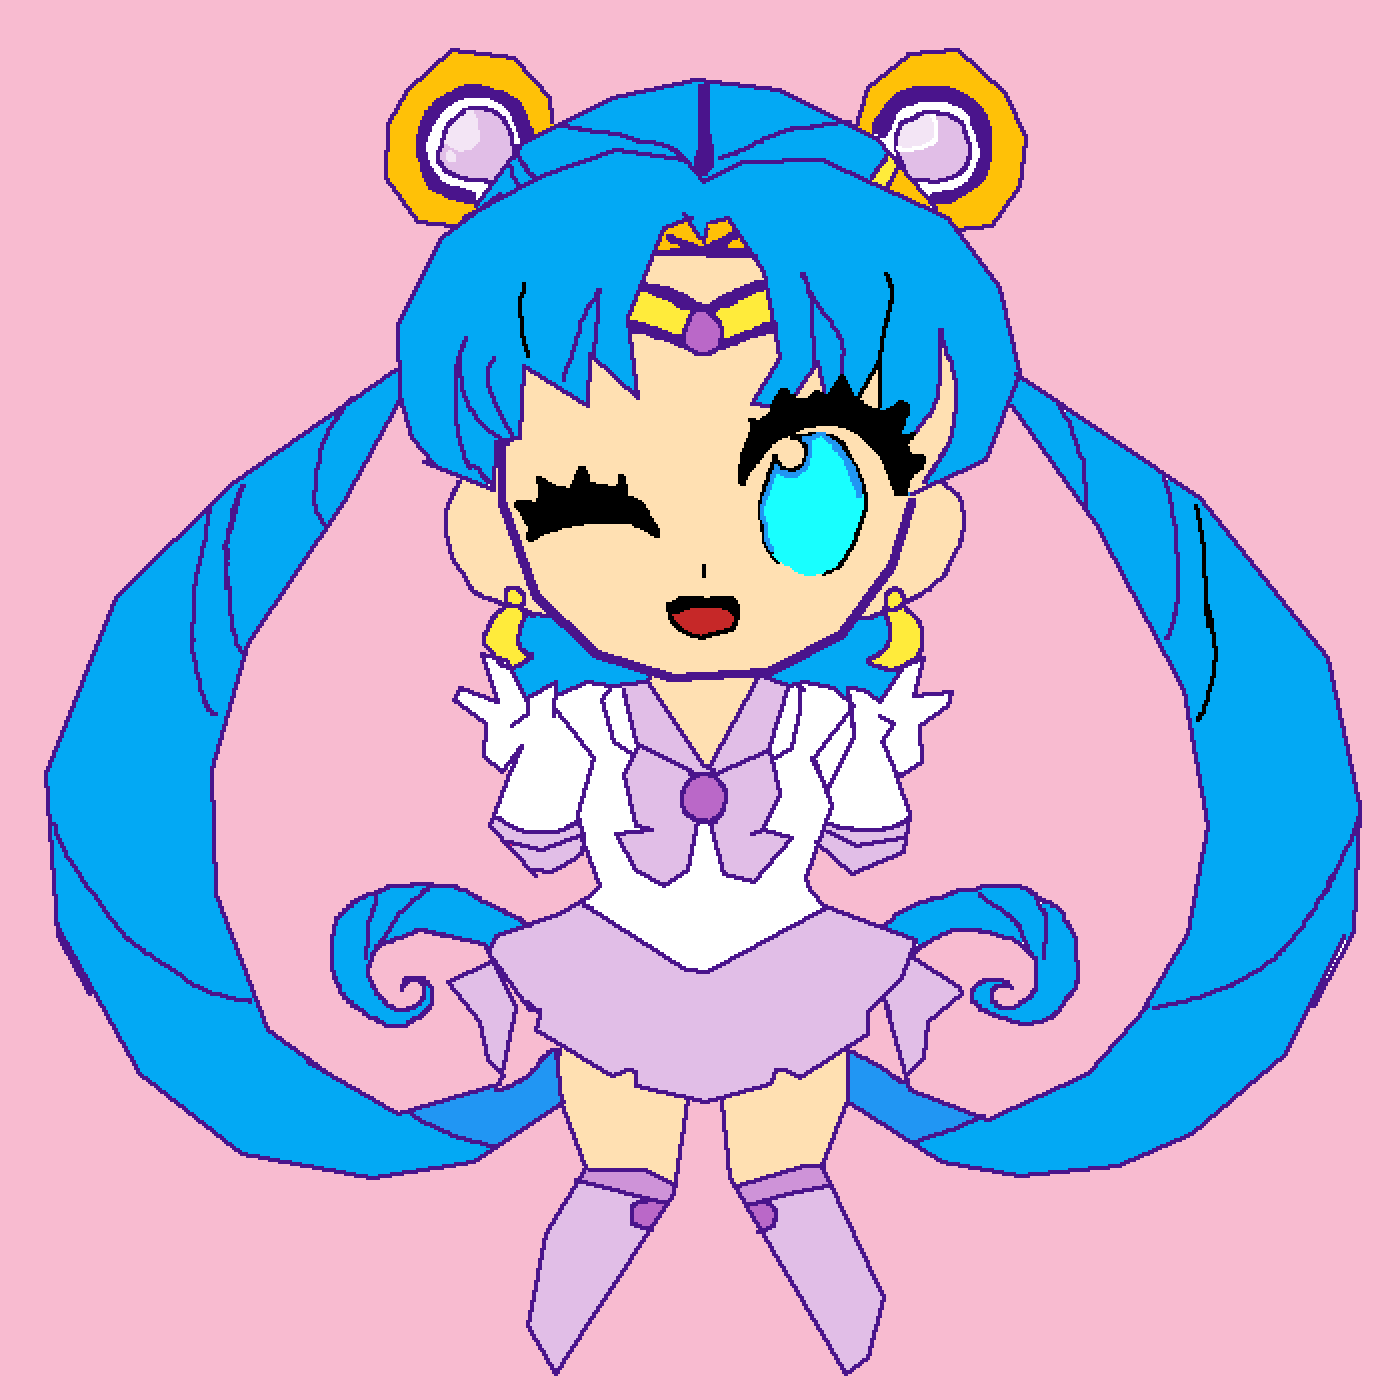 my oc as a sailor moon character  by Wolfgirl16